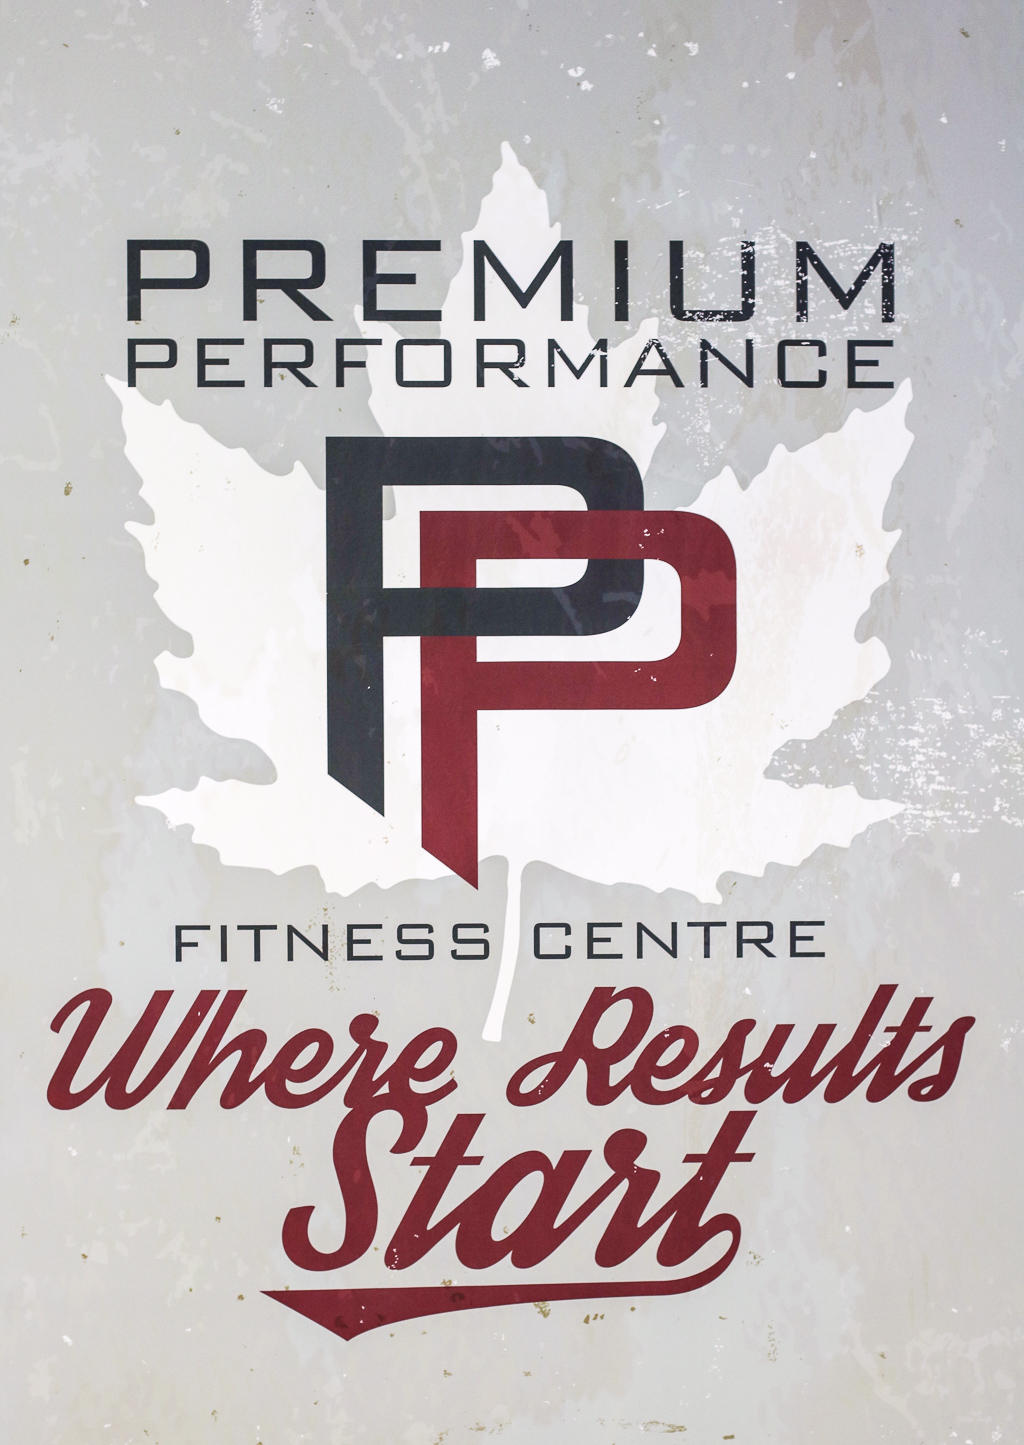 Premium Performance created a personal training and nutrition plan for me that has resulted in major results already. Details in post!